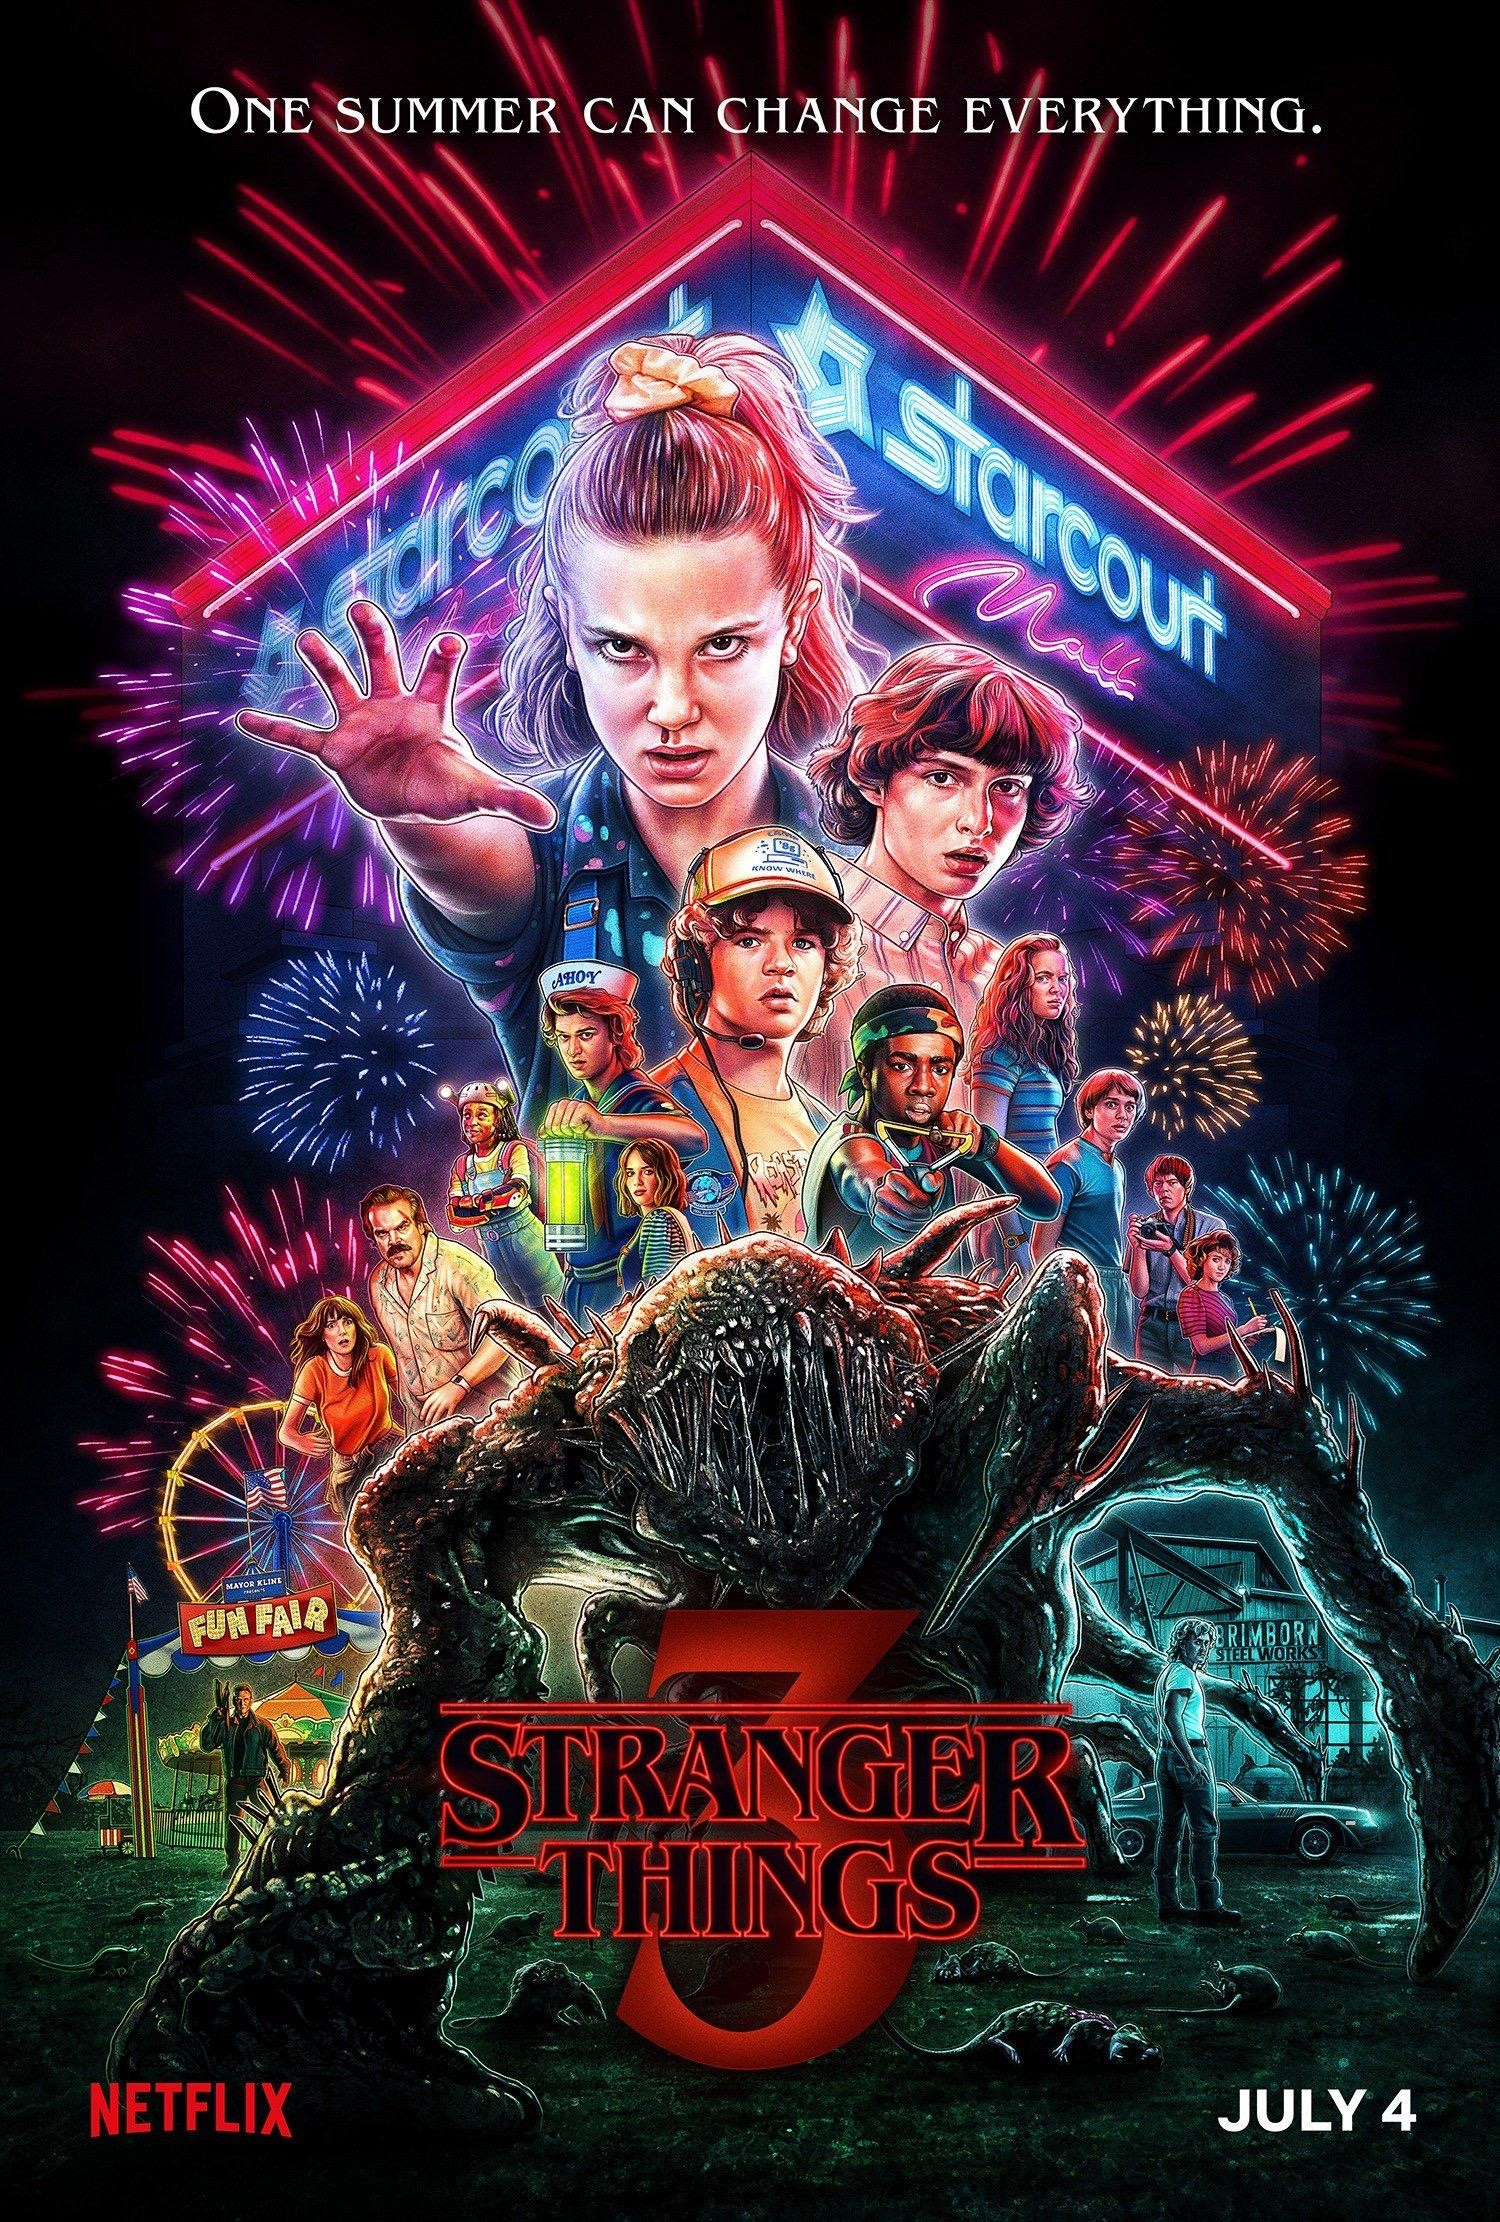 Stranger Things Season 3 怪奇物语 第3季